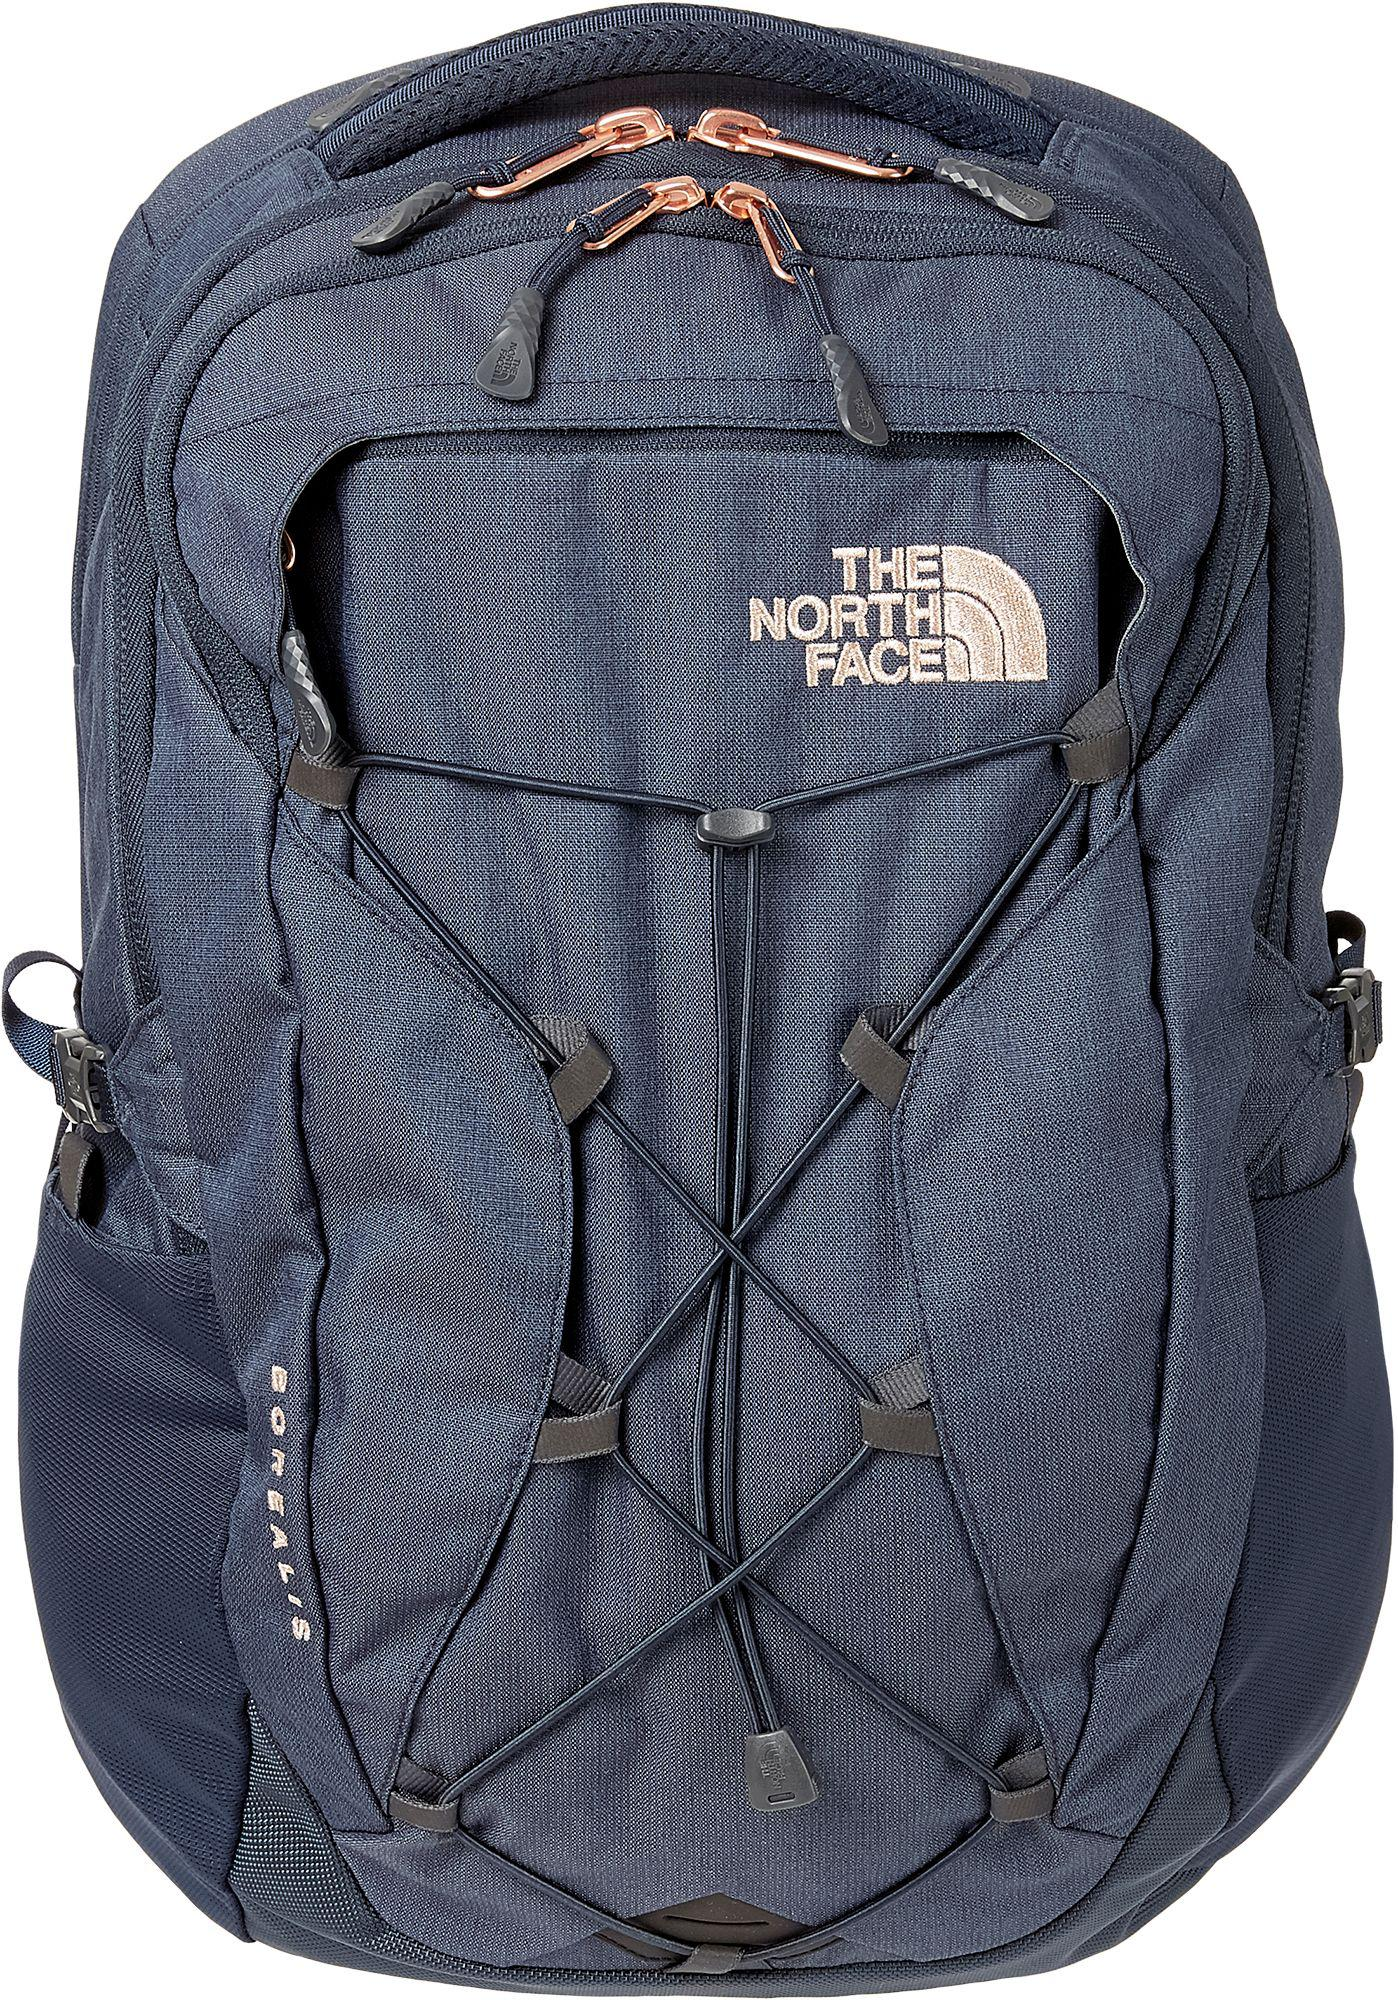 bdbefa5a682 The North Face Orealis Luxe Backpack in Blue - Lyst